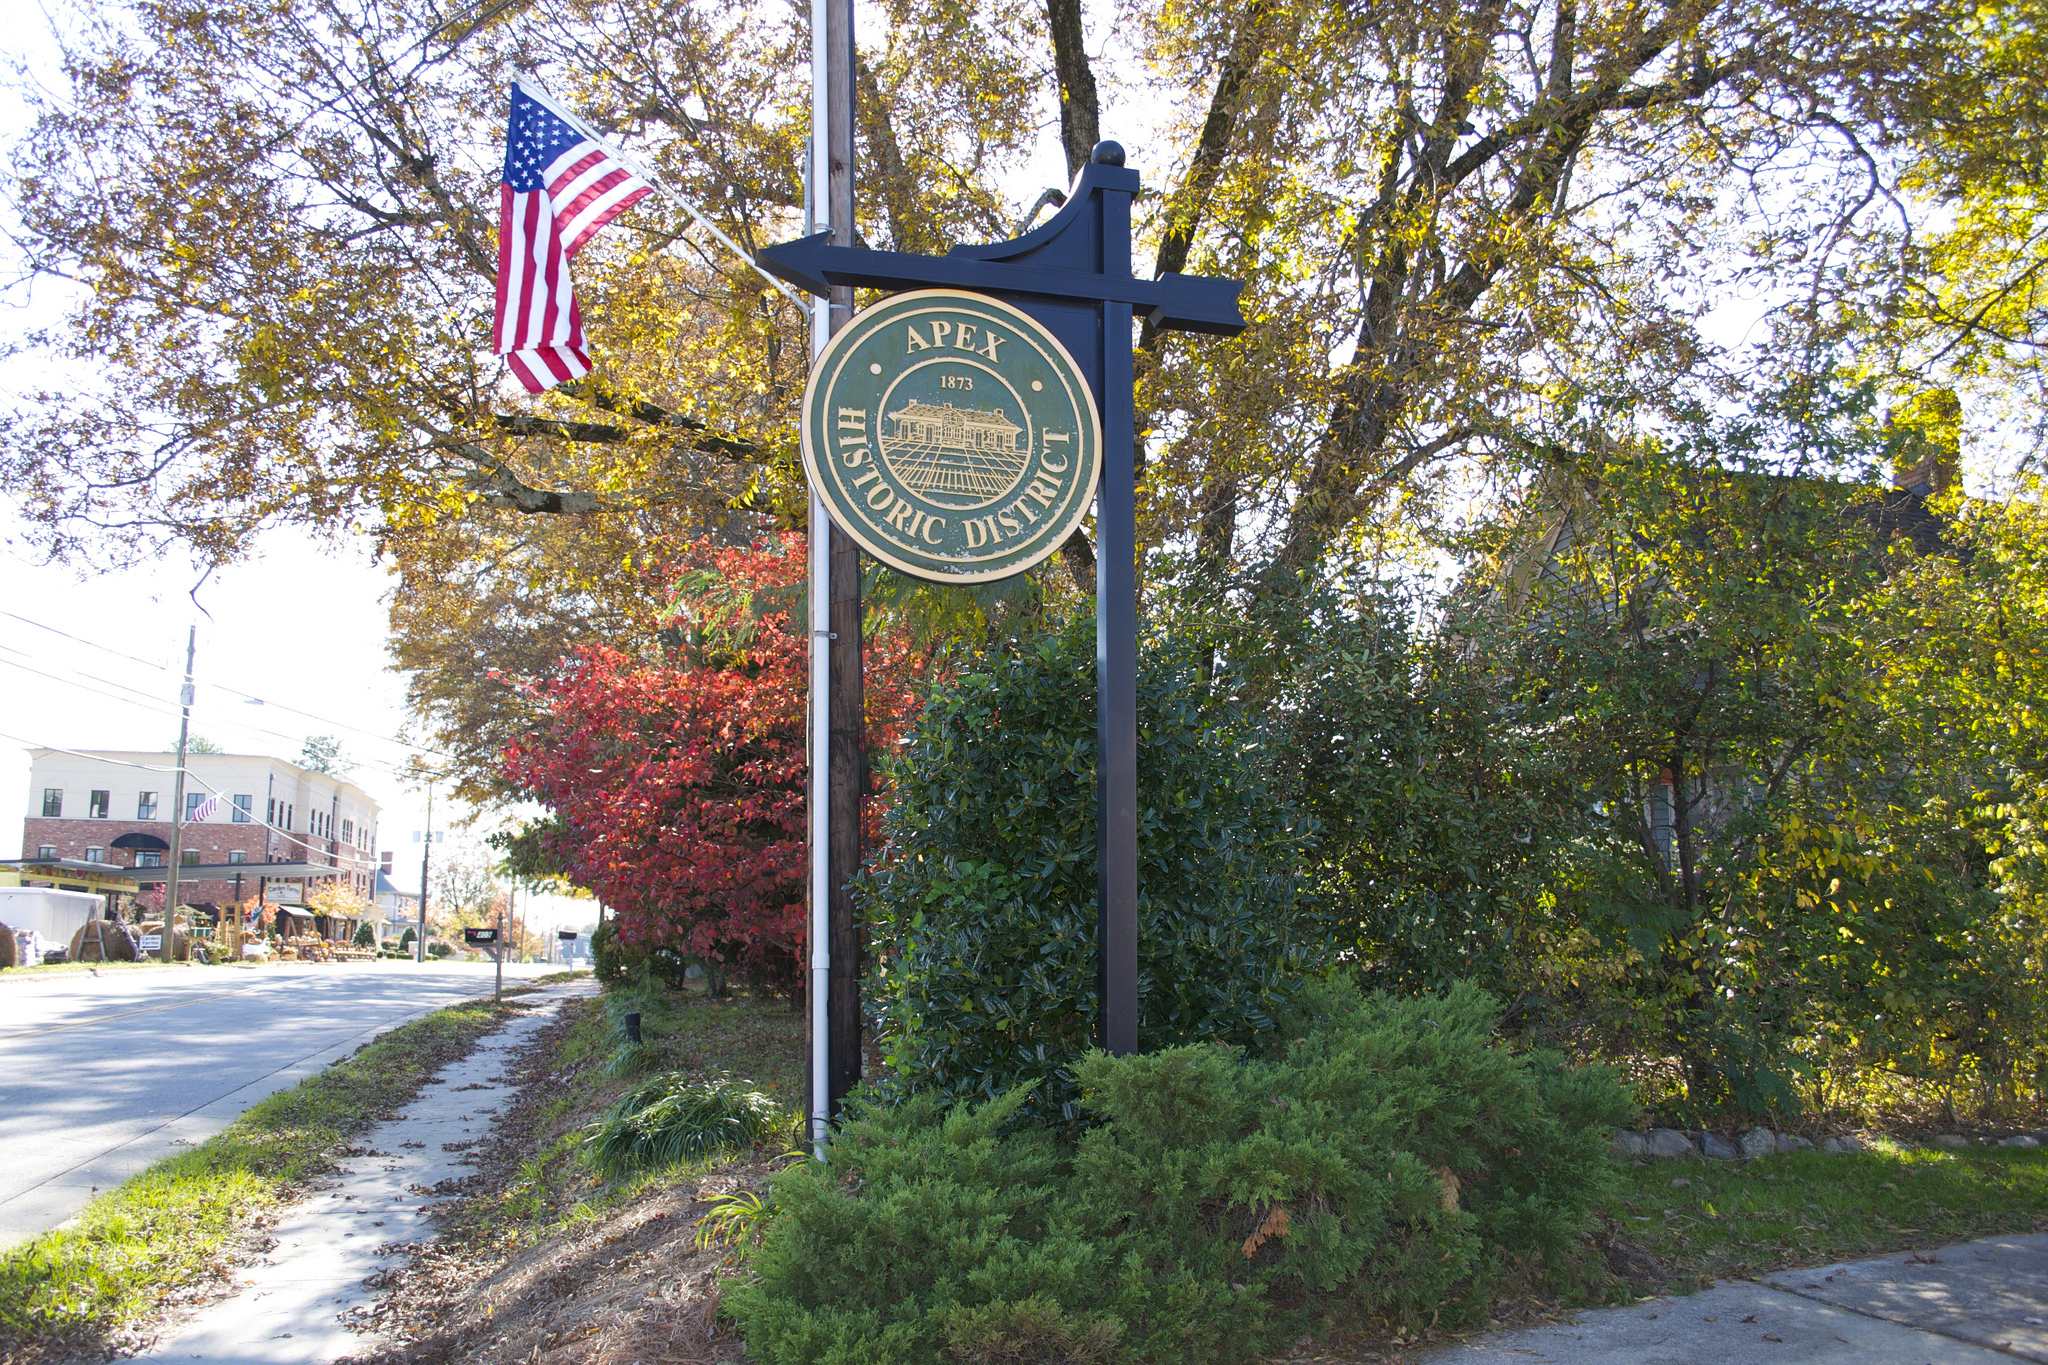 Sign welcoming visitors into the Apex Historic District surrounded by trees and foliage.